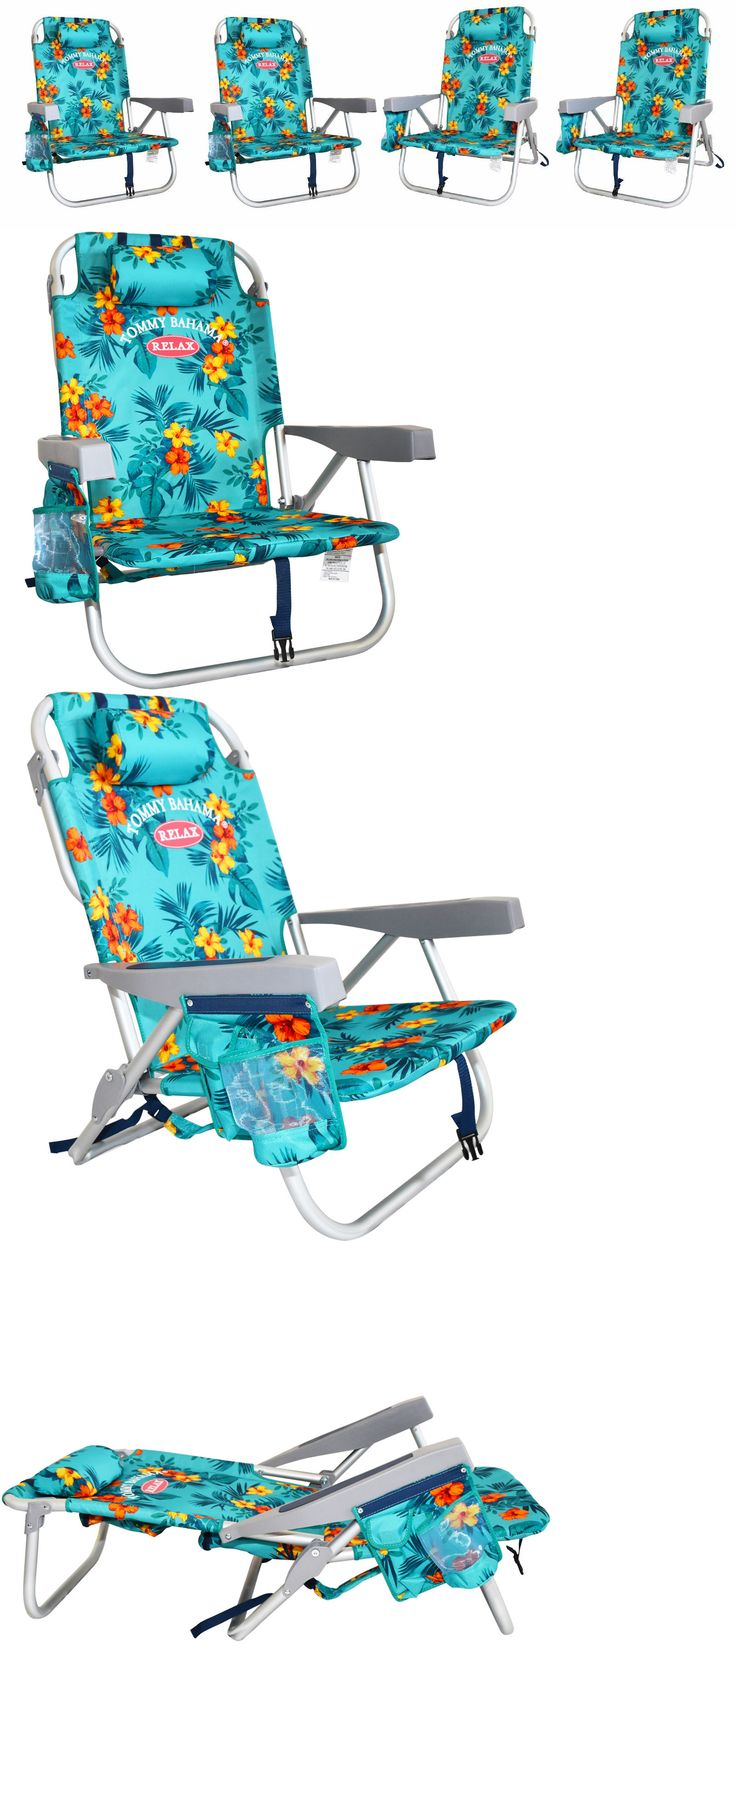 Jerry chair backpacking - Chairs 79682 4pc Green Floral Tommy Bahama Backpack Cooler Beach Chair Buy It